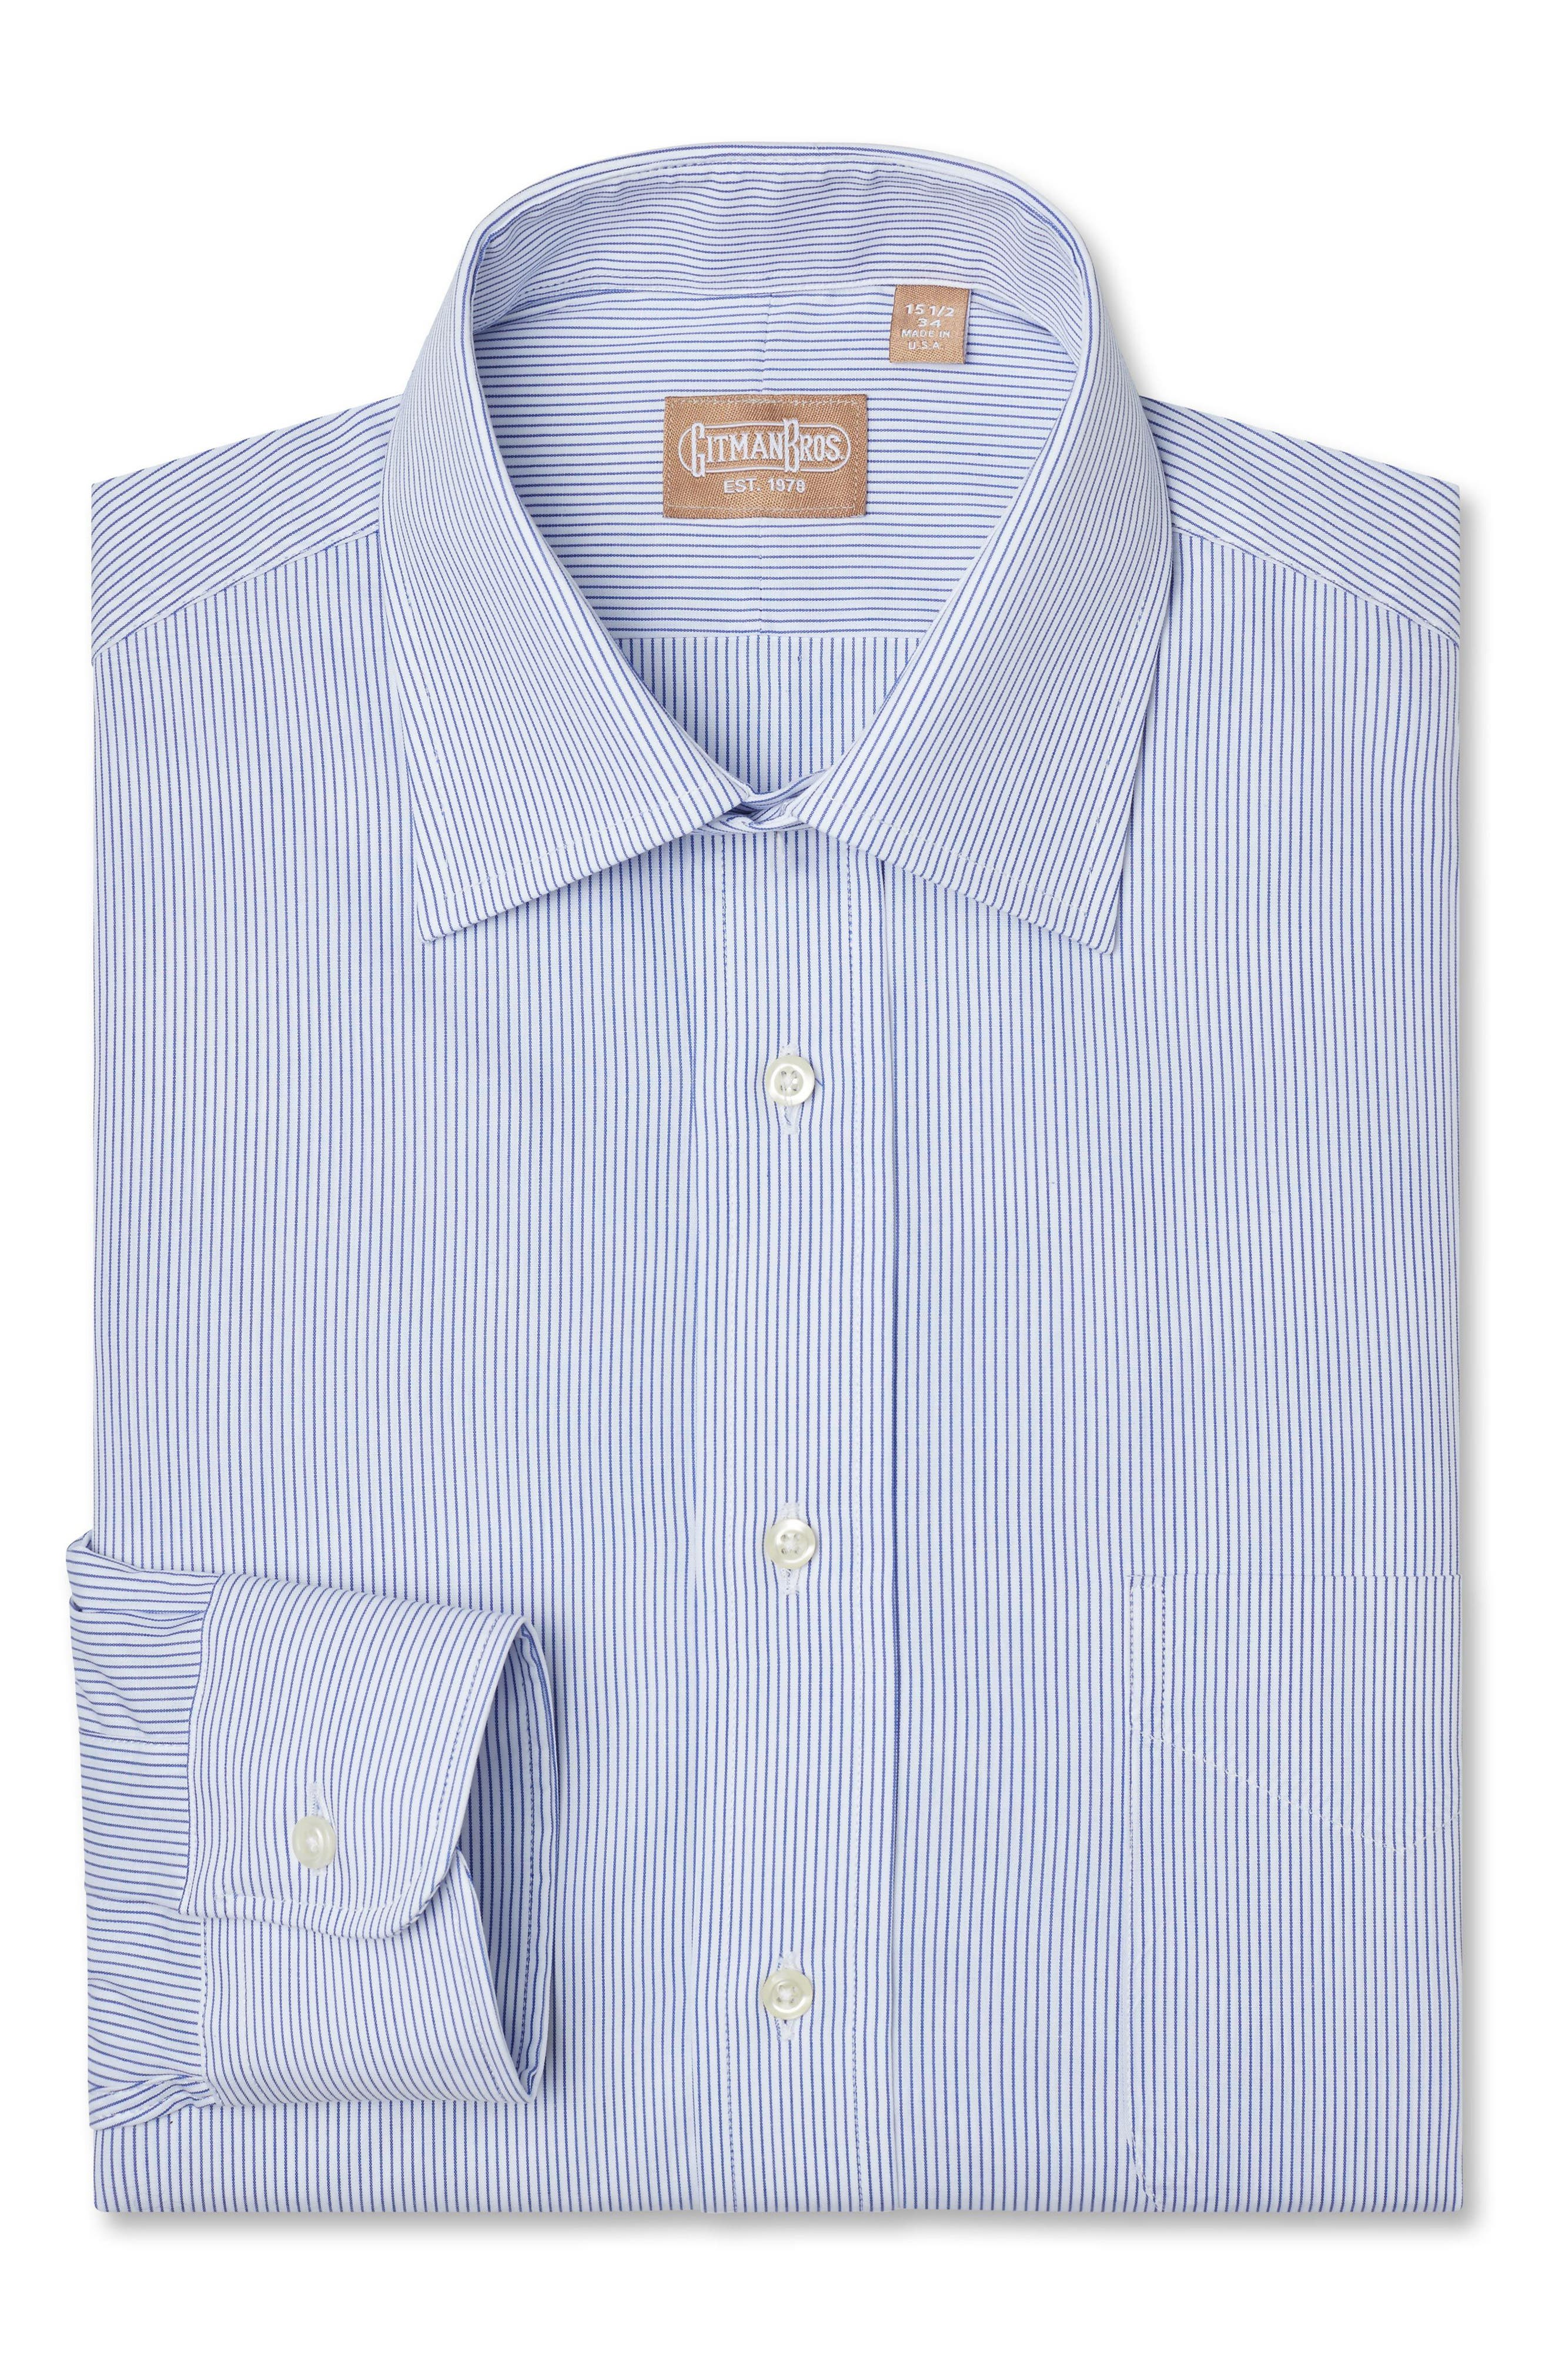 Regular Fit Stripe Dress Shirt,                         Main,                         color, 430